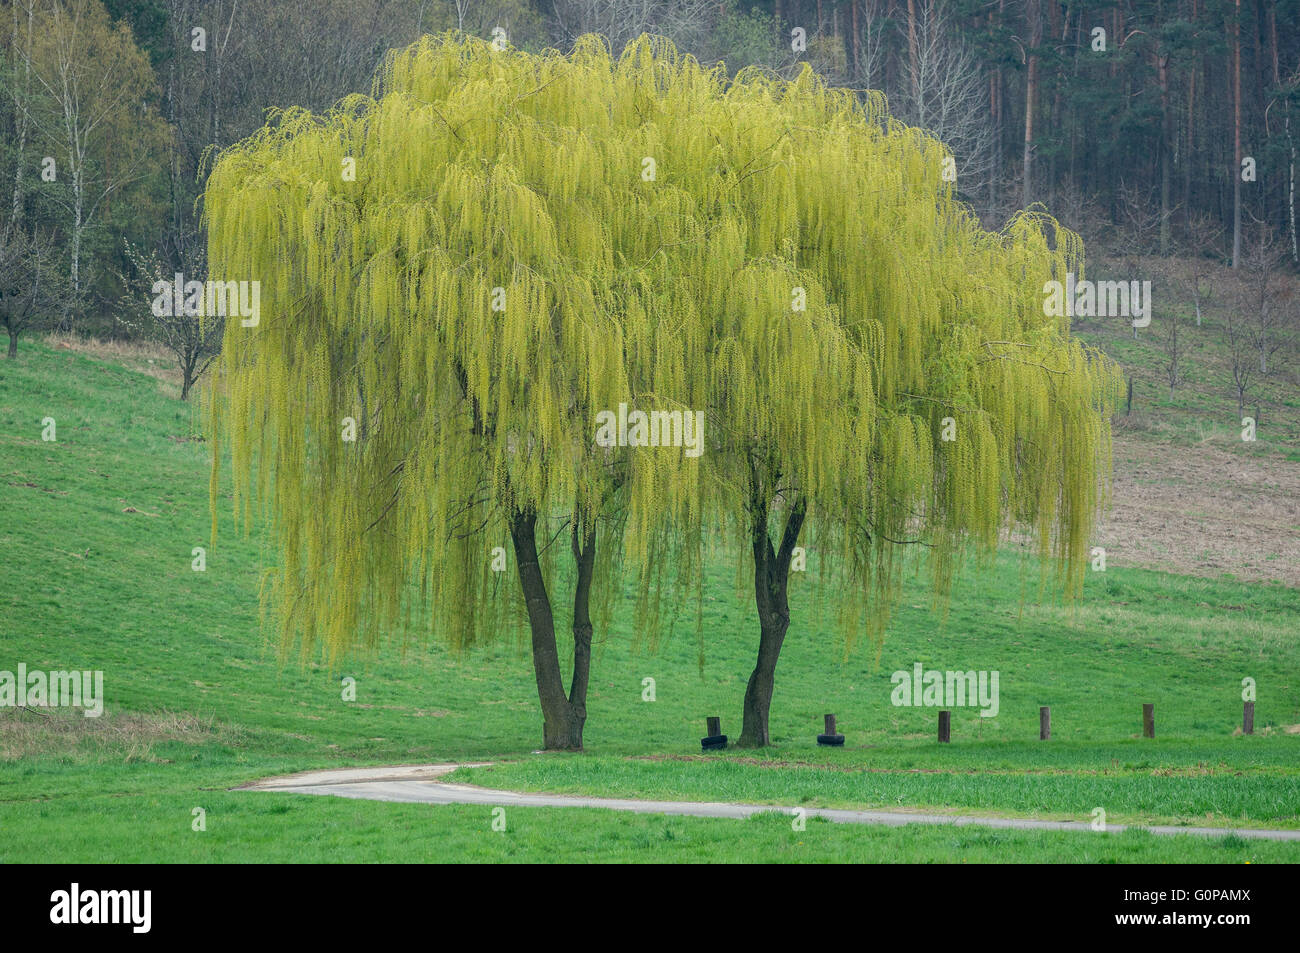 Two budding weeping willows in the spring willow - Stock Image